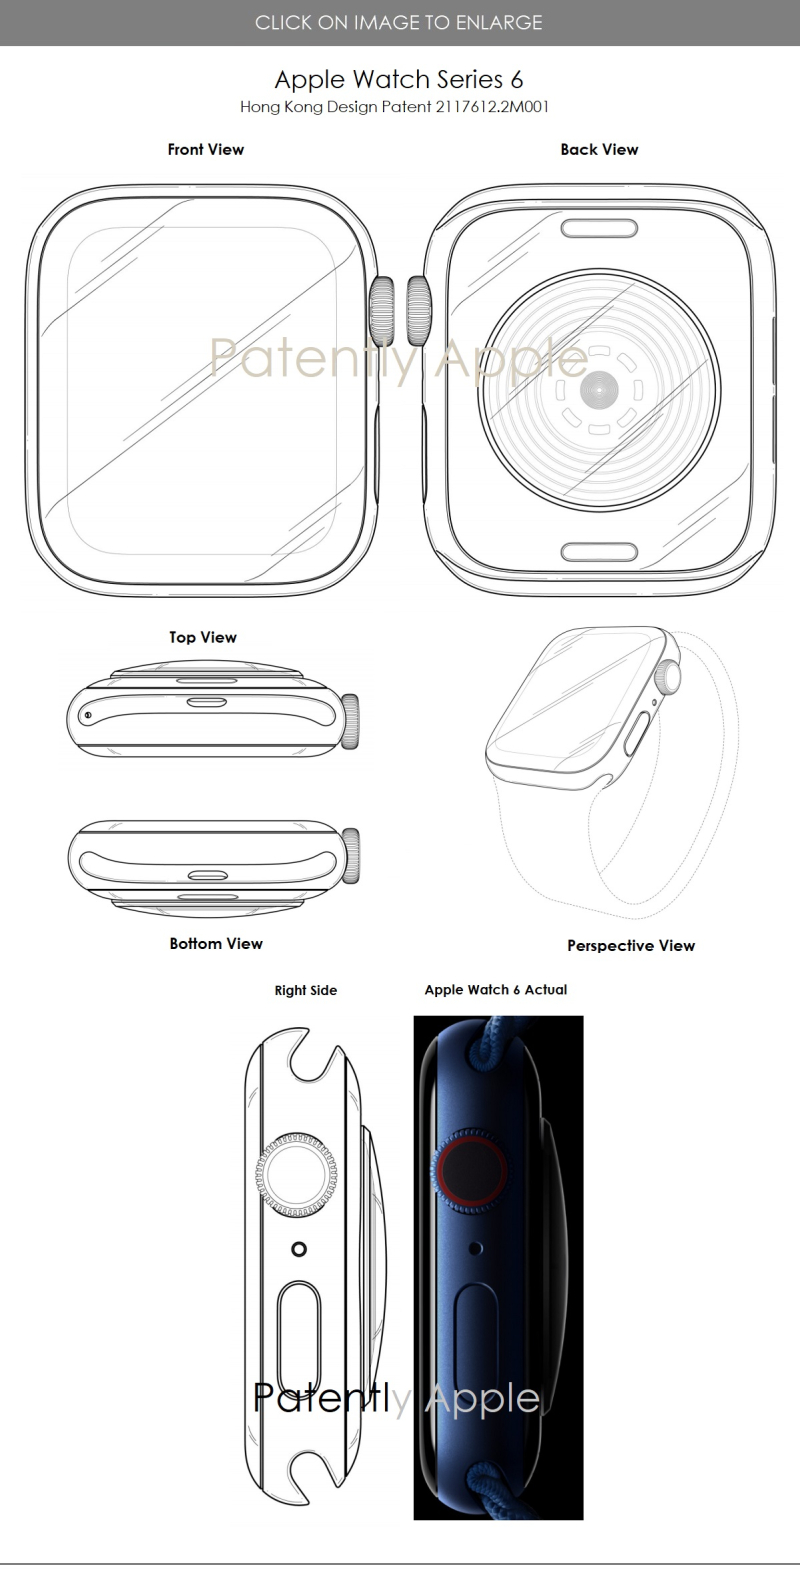 2 APPLE WATCH 6 WITH BRAIDED SOLO LOOP BAND